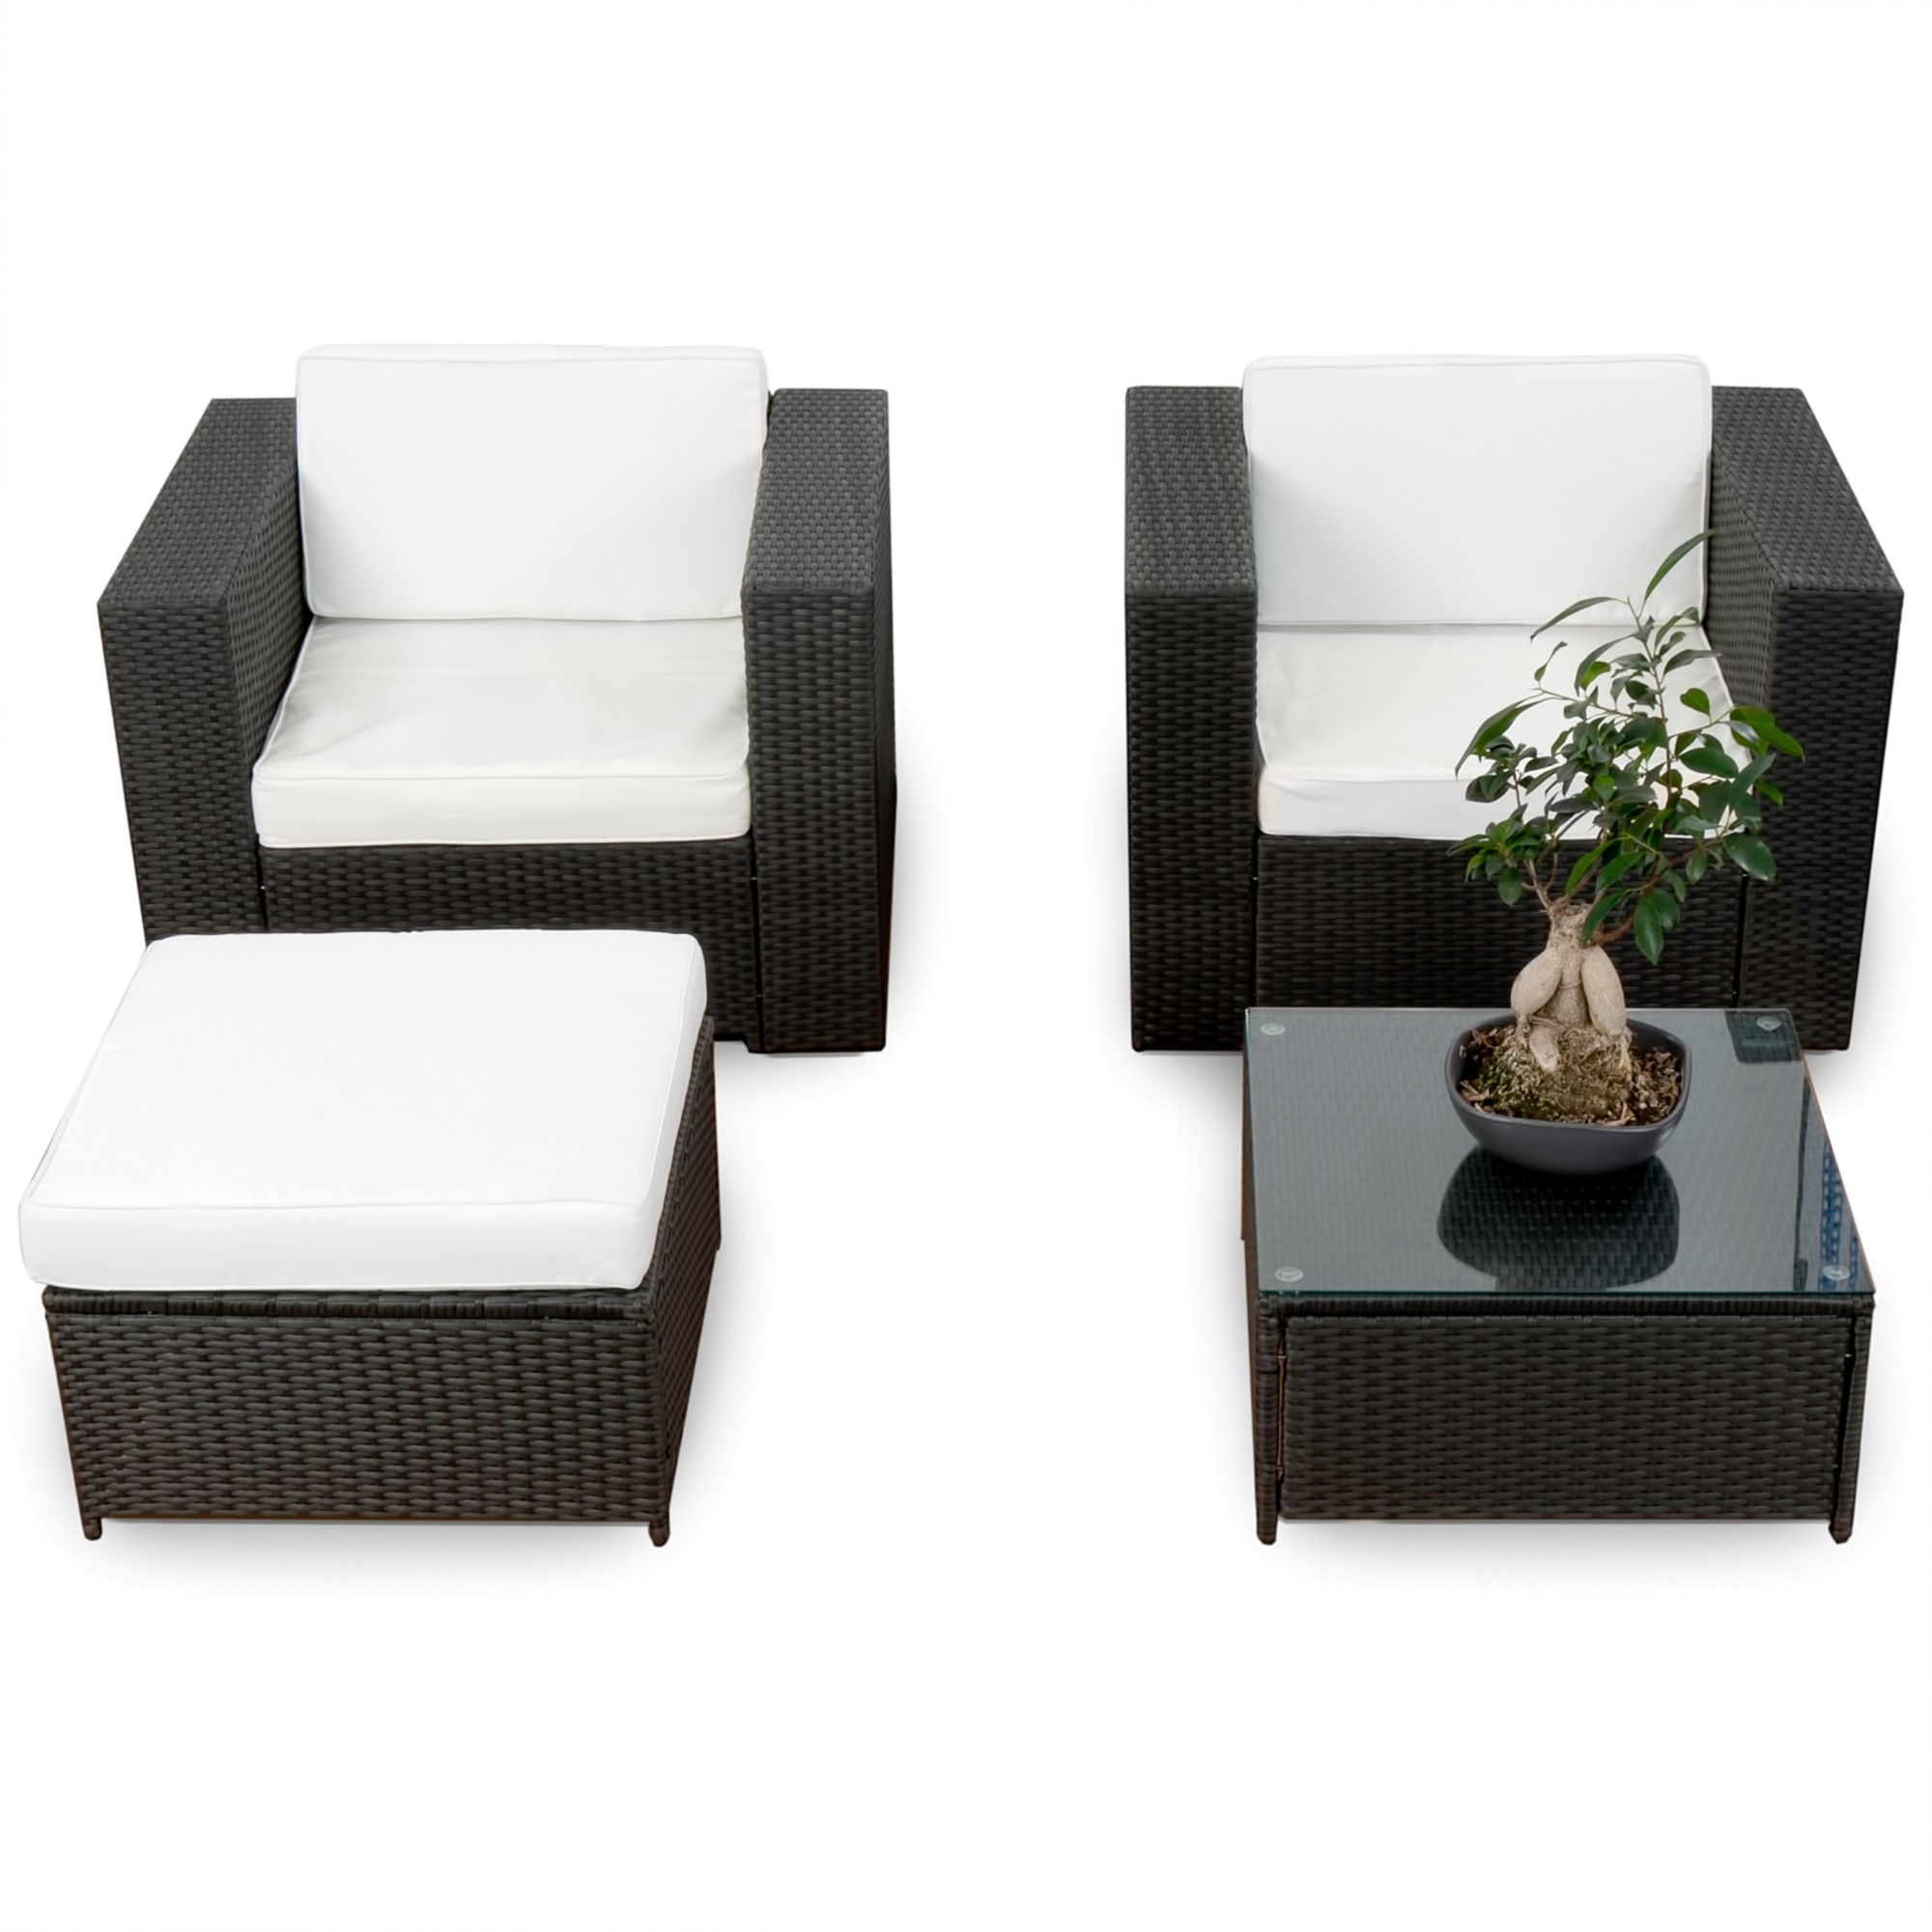 lounge balkon g nstig balkon lounge kaufen. Black Bedroom Furniture Sets. Home Design Ideas